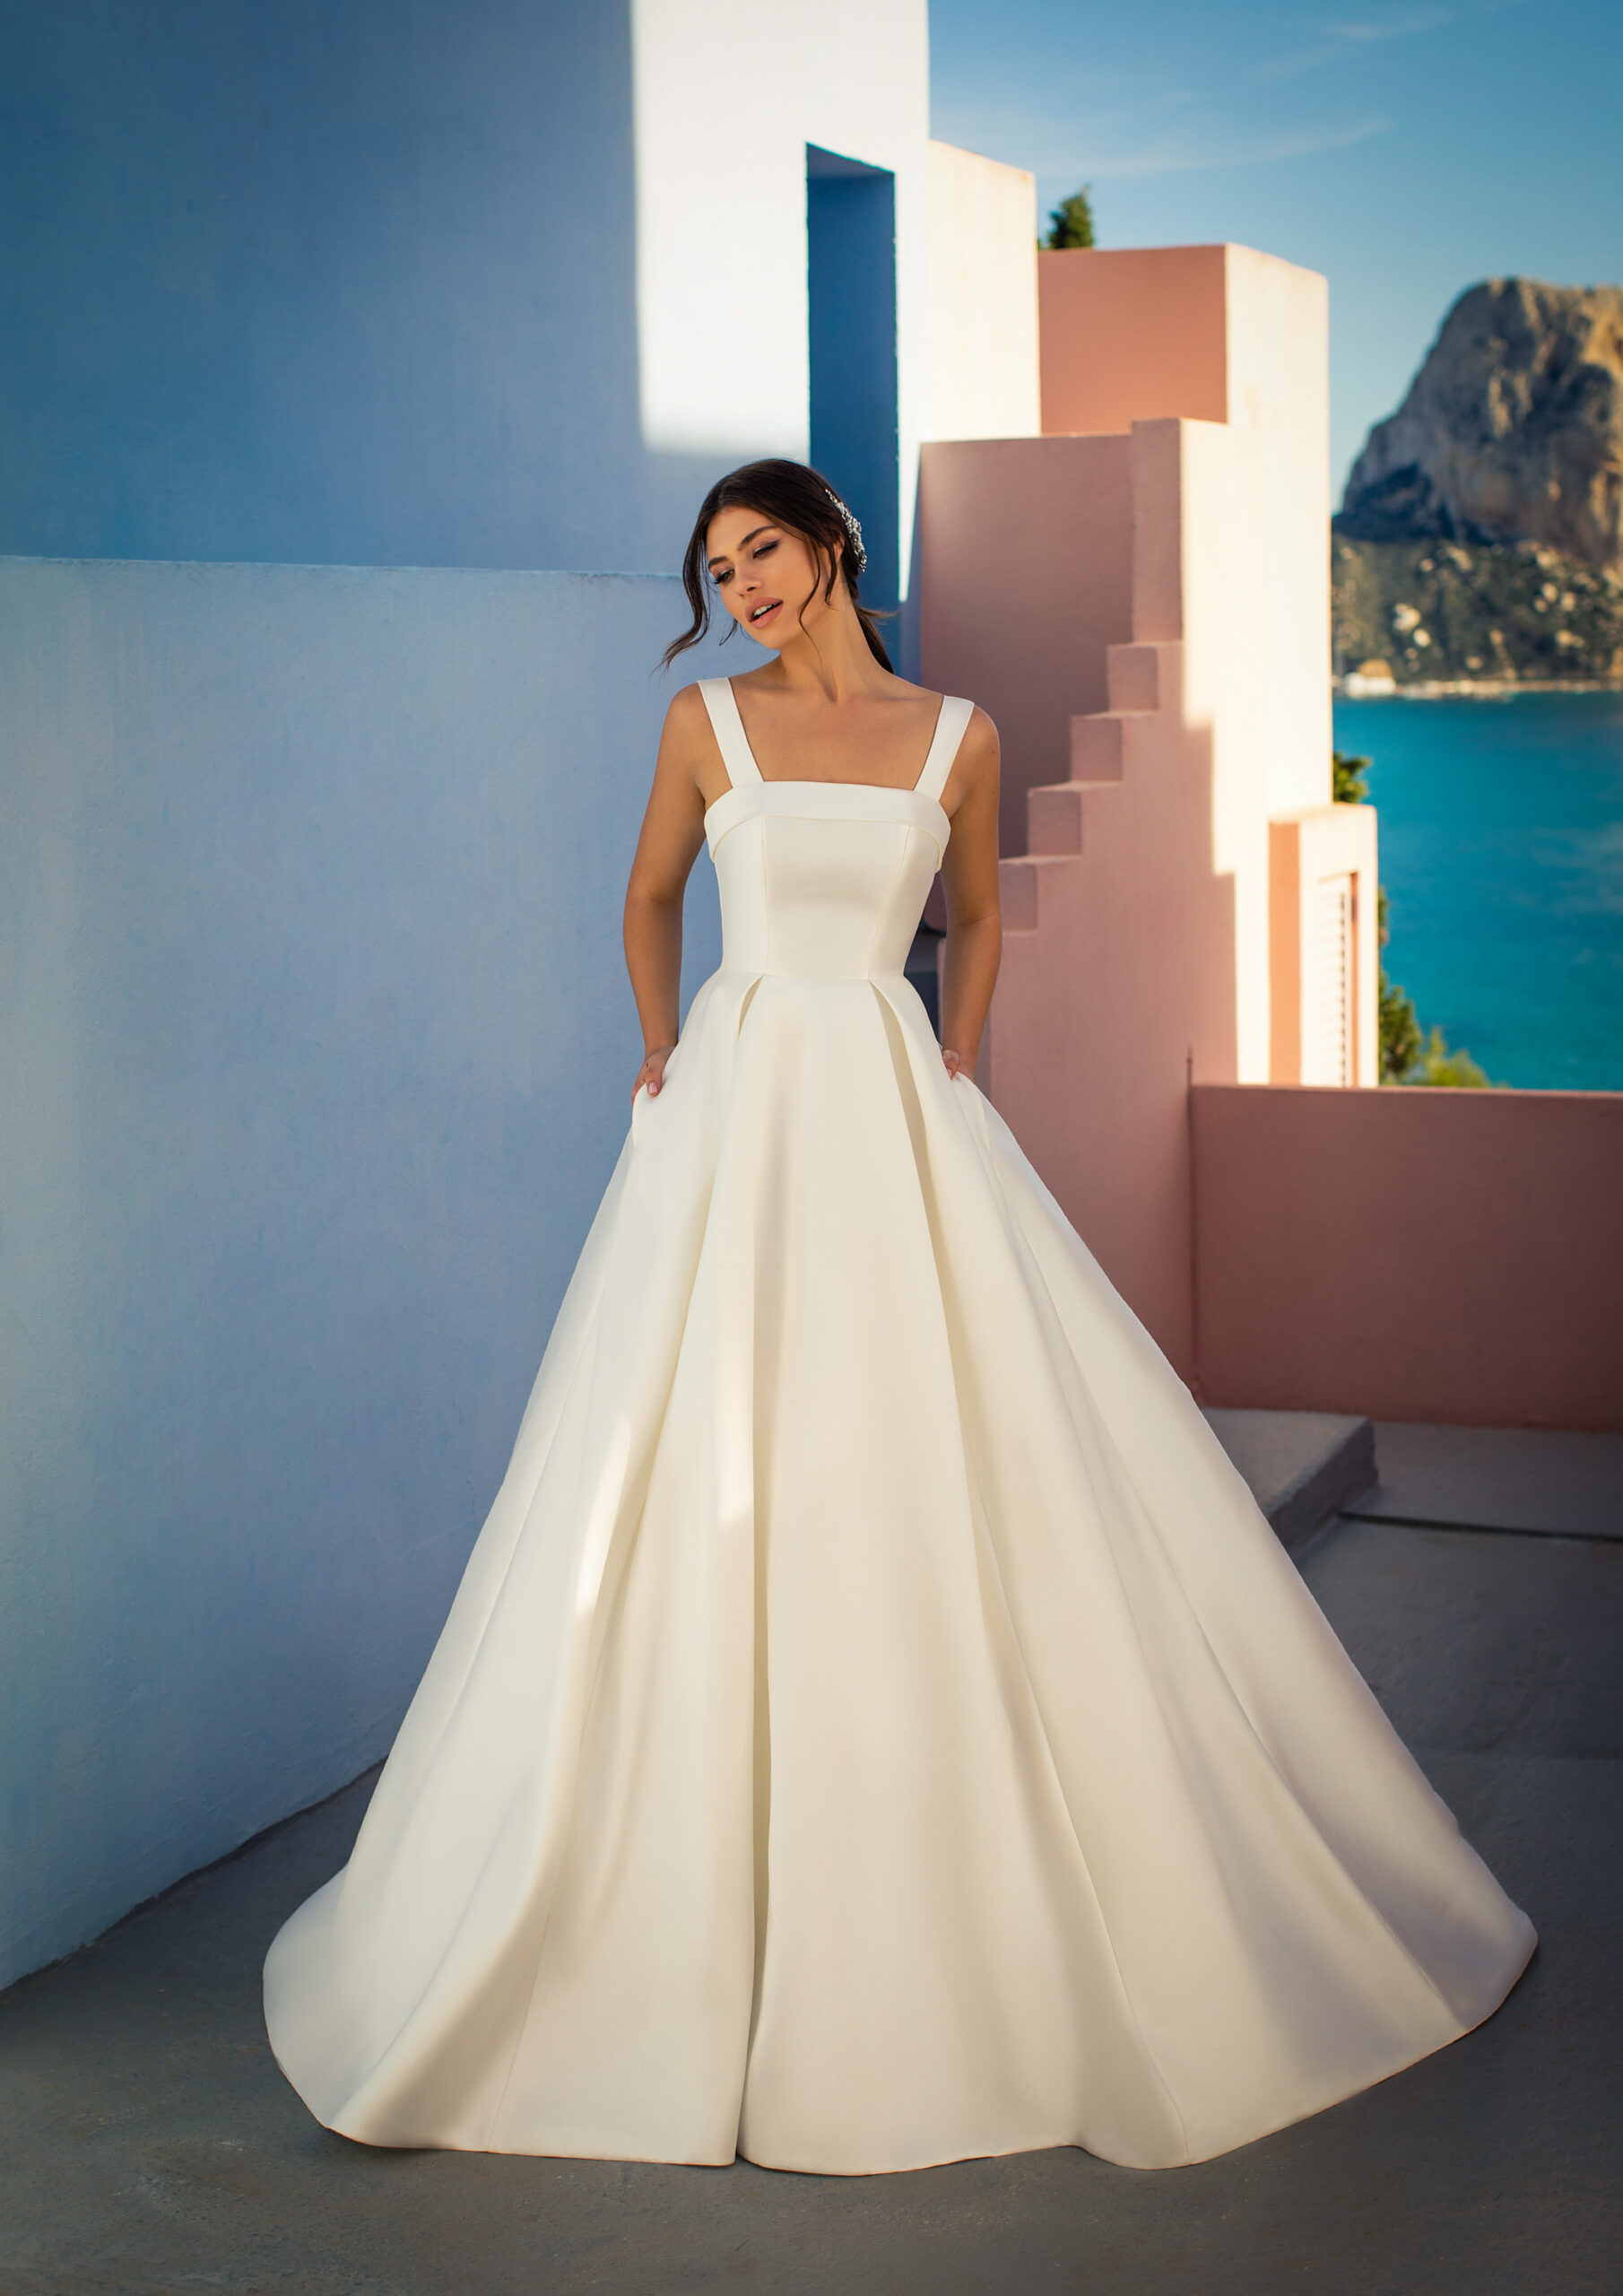 Brautkleid HELEN 2021 Kollektion